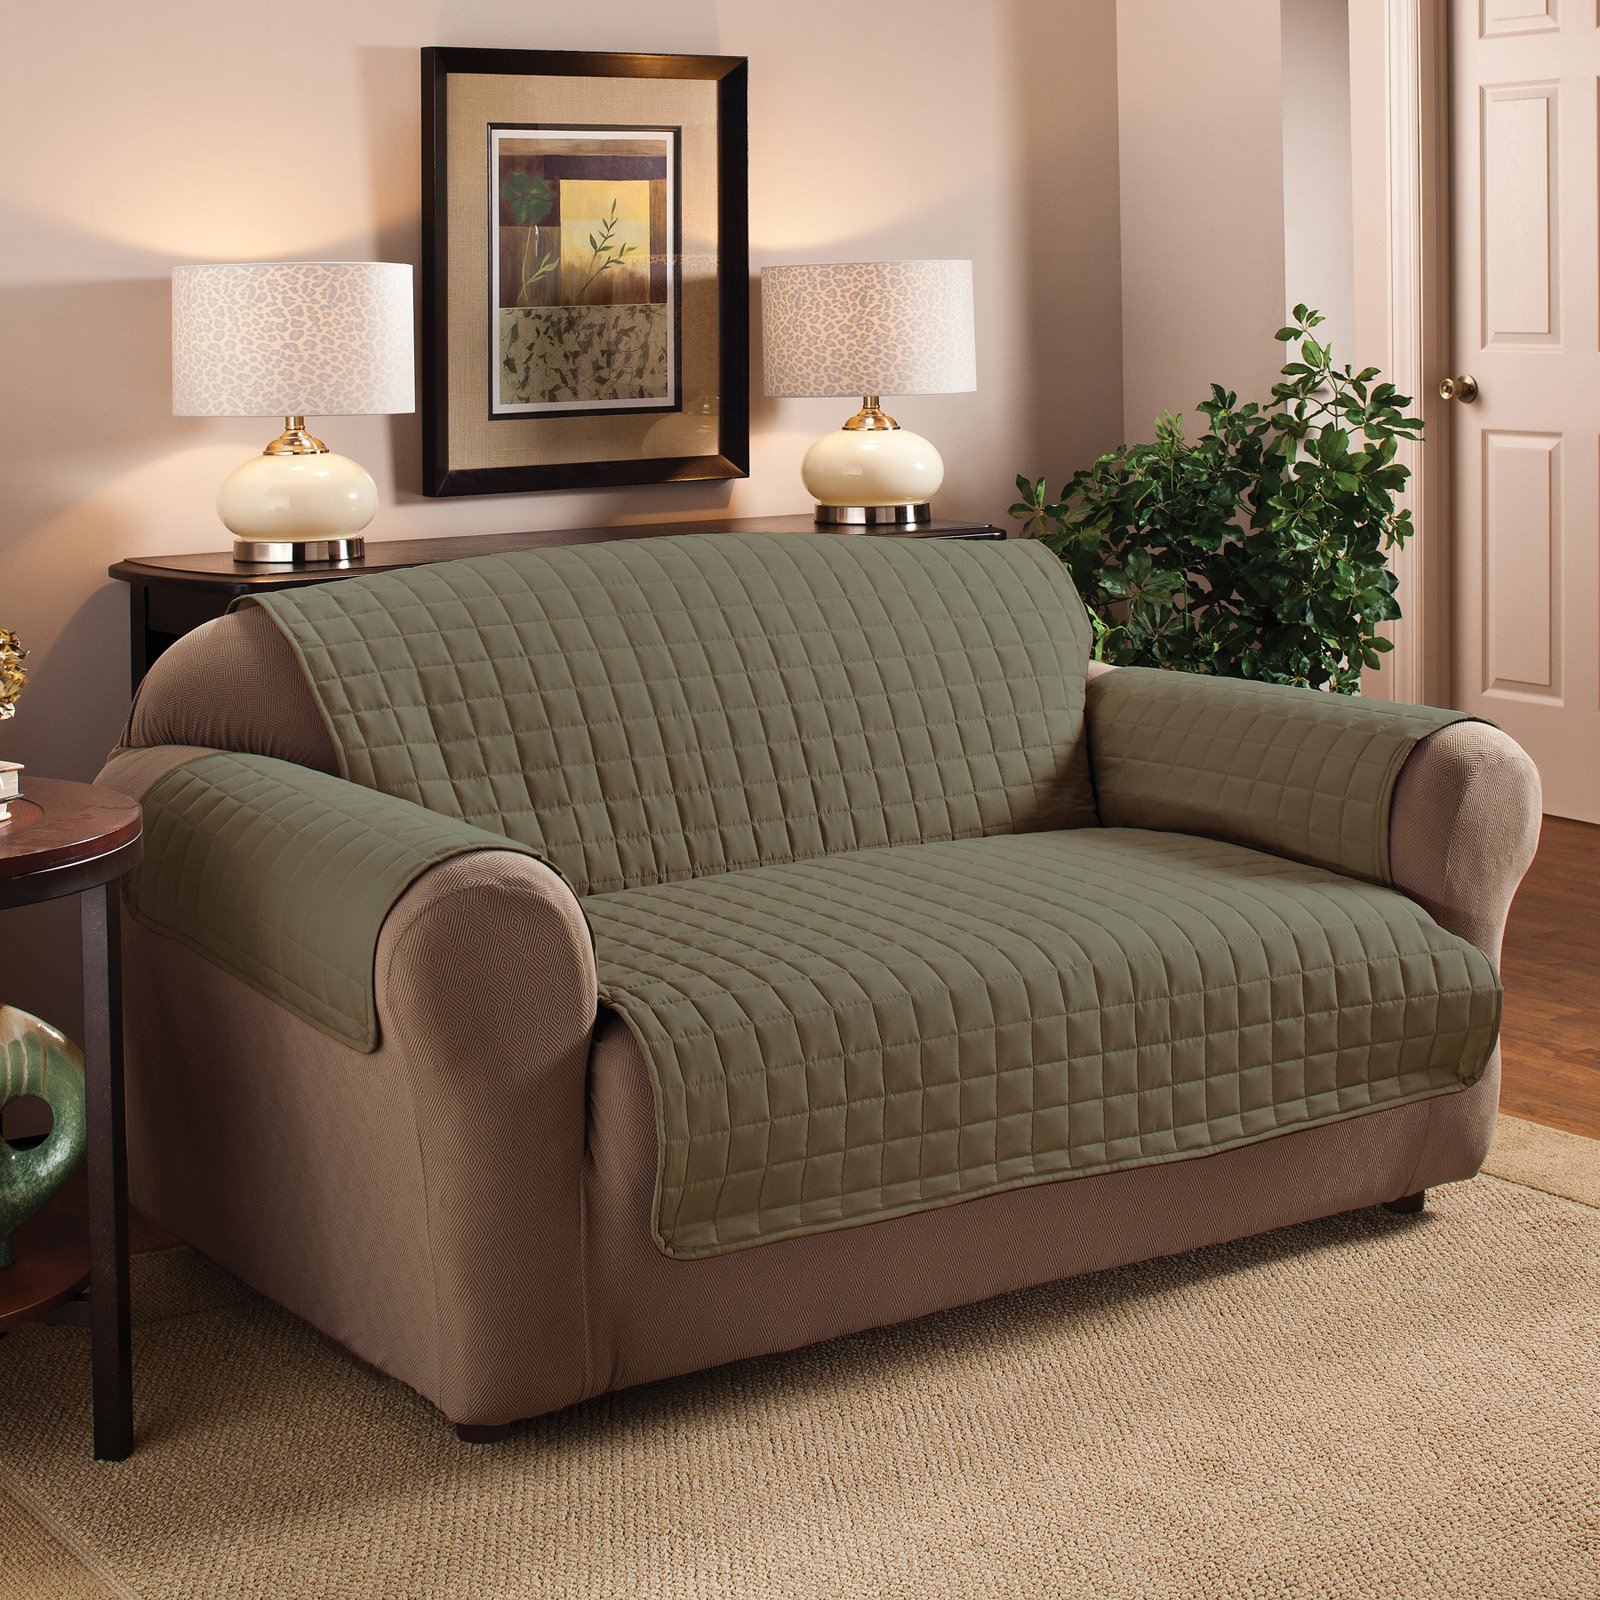 Innovative textile solutions microfiber furniture protectors sofa couch cover